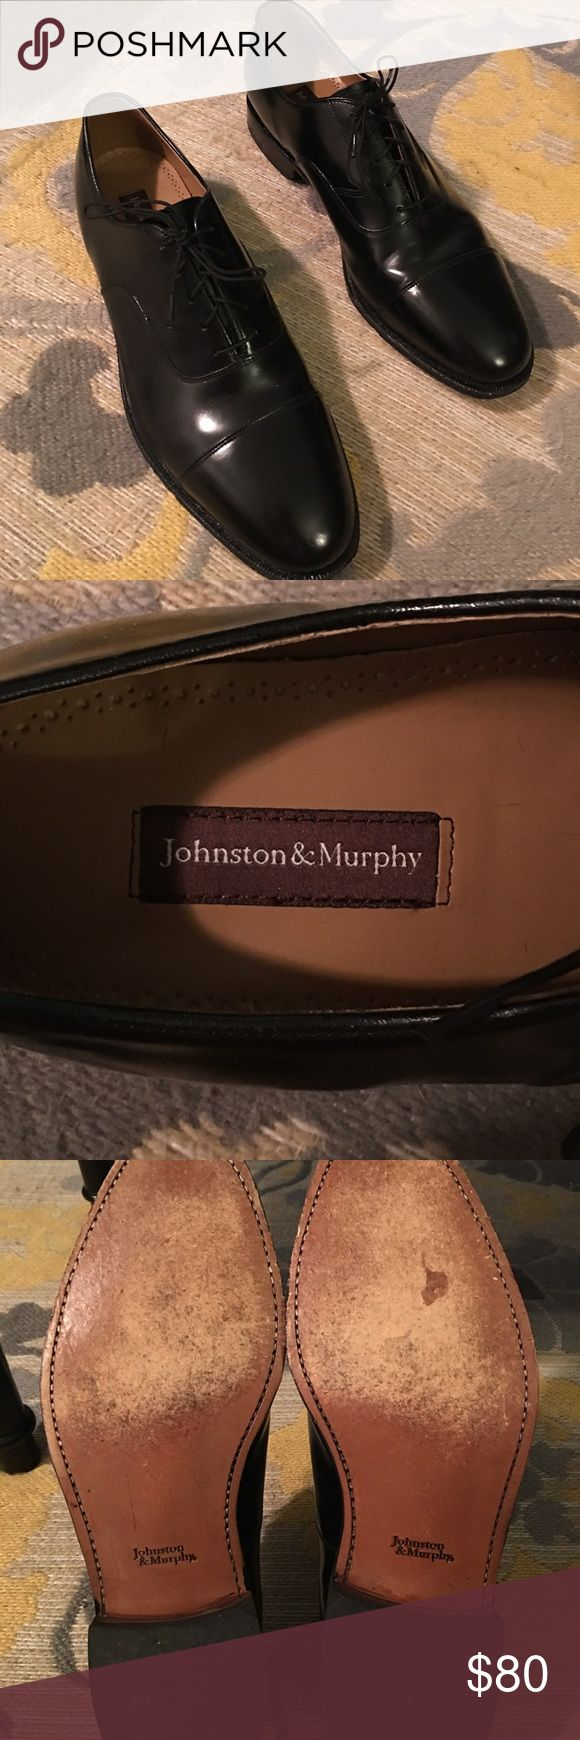 Johnson & Murphy dress shoes Wore for 4 hours in a wedding as a groomsman.  No longer needed, EXCELLENT used condition. Full price: $150 at the outlet mall Johnston & Murphy Shoes Oxfords & Derbys